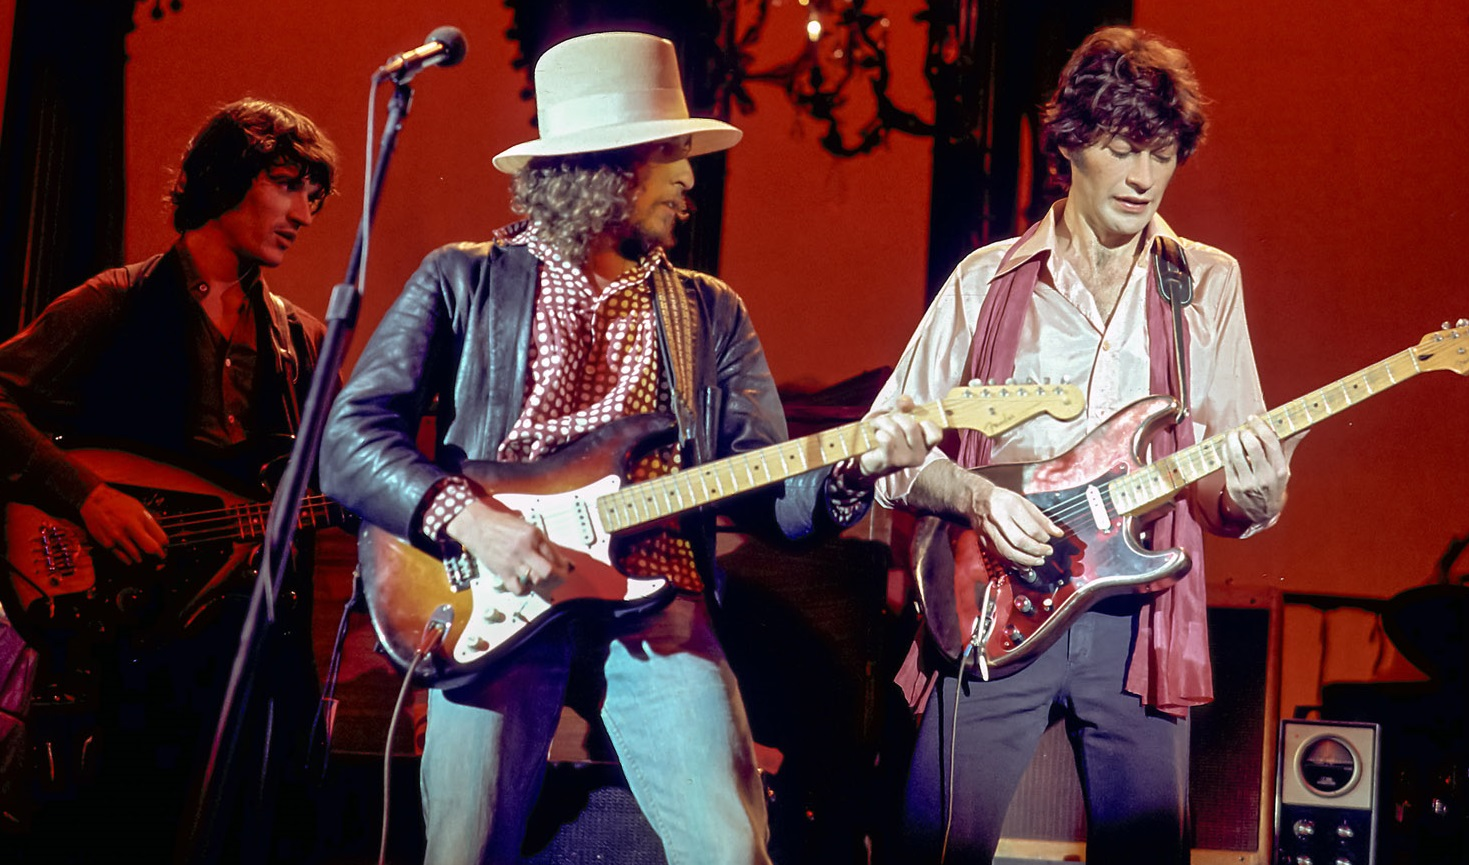 'Last Waltz' in SF, CA 1976.